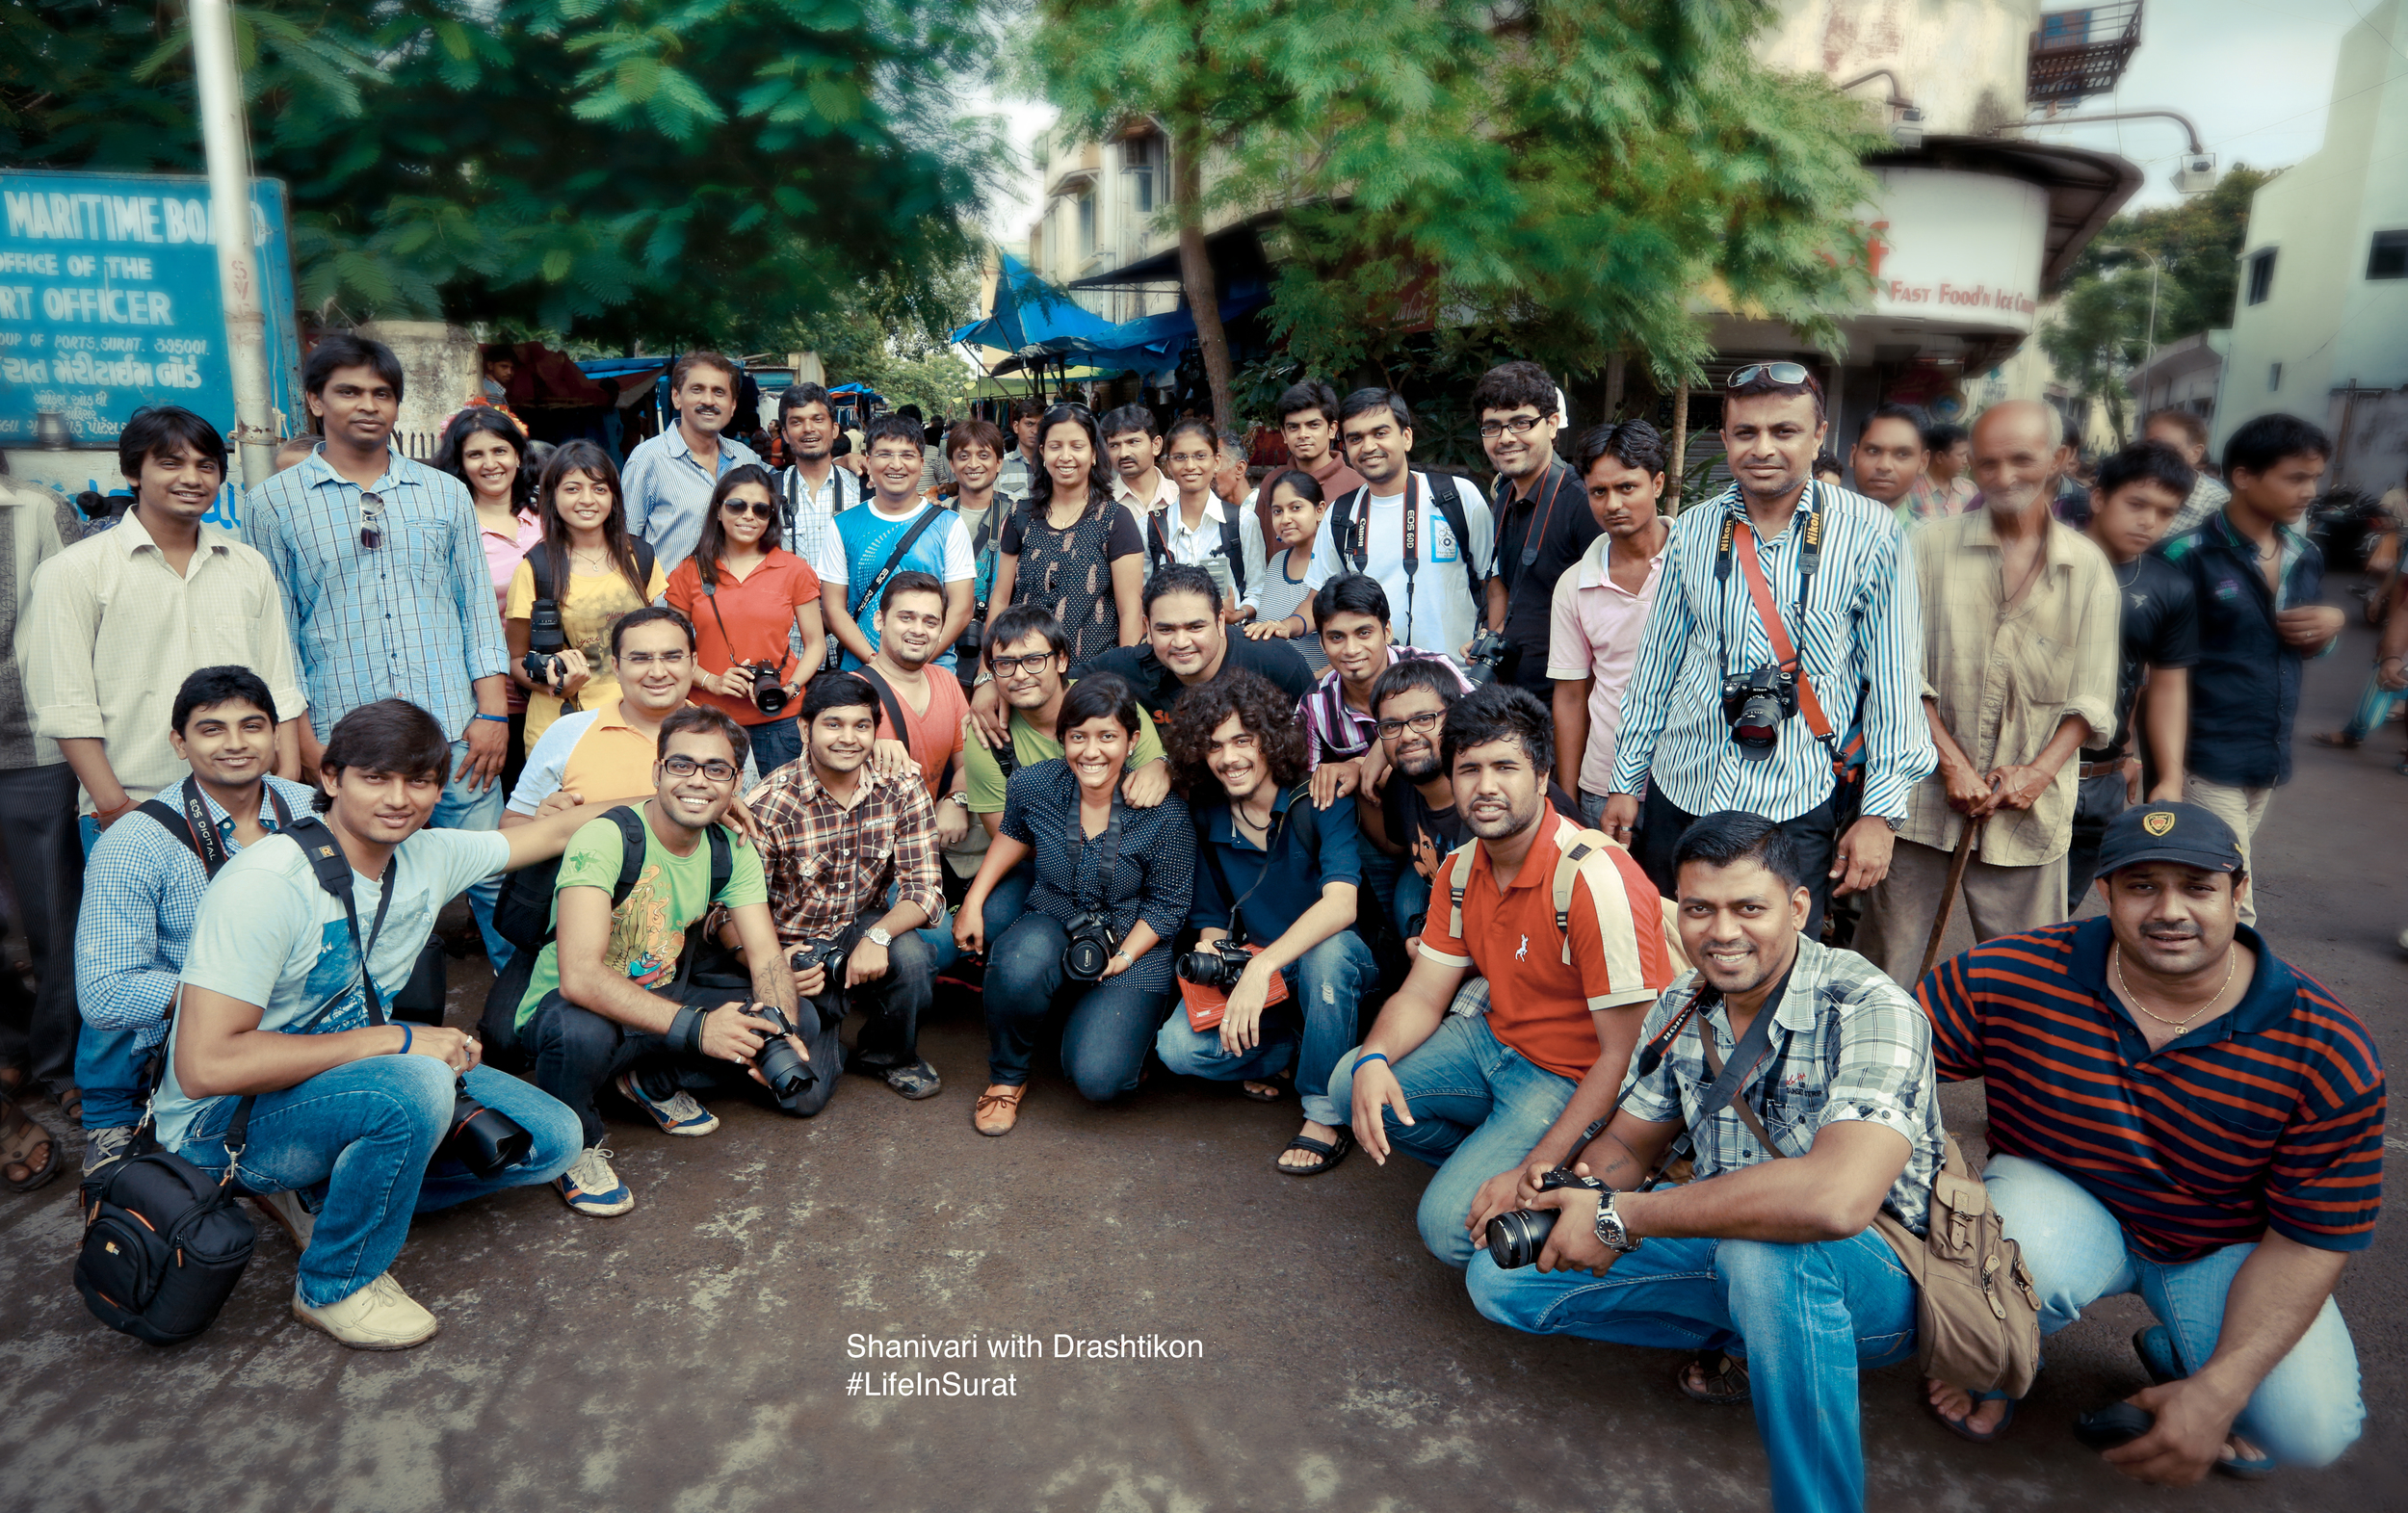 Group Photo With Drashtikon at Shanivari Market.